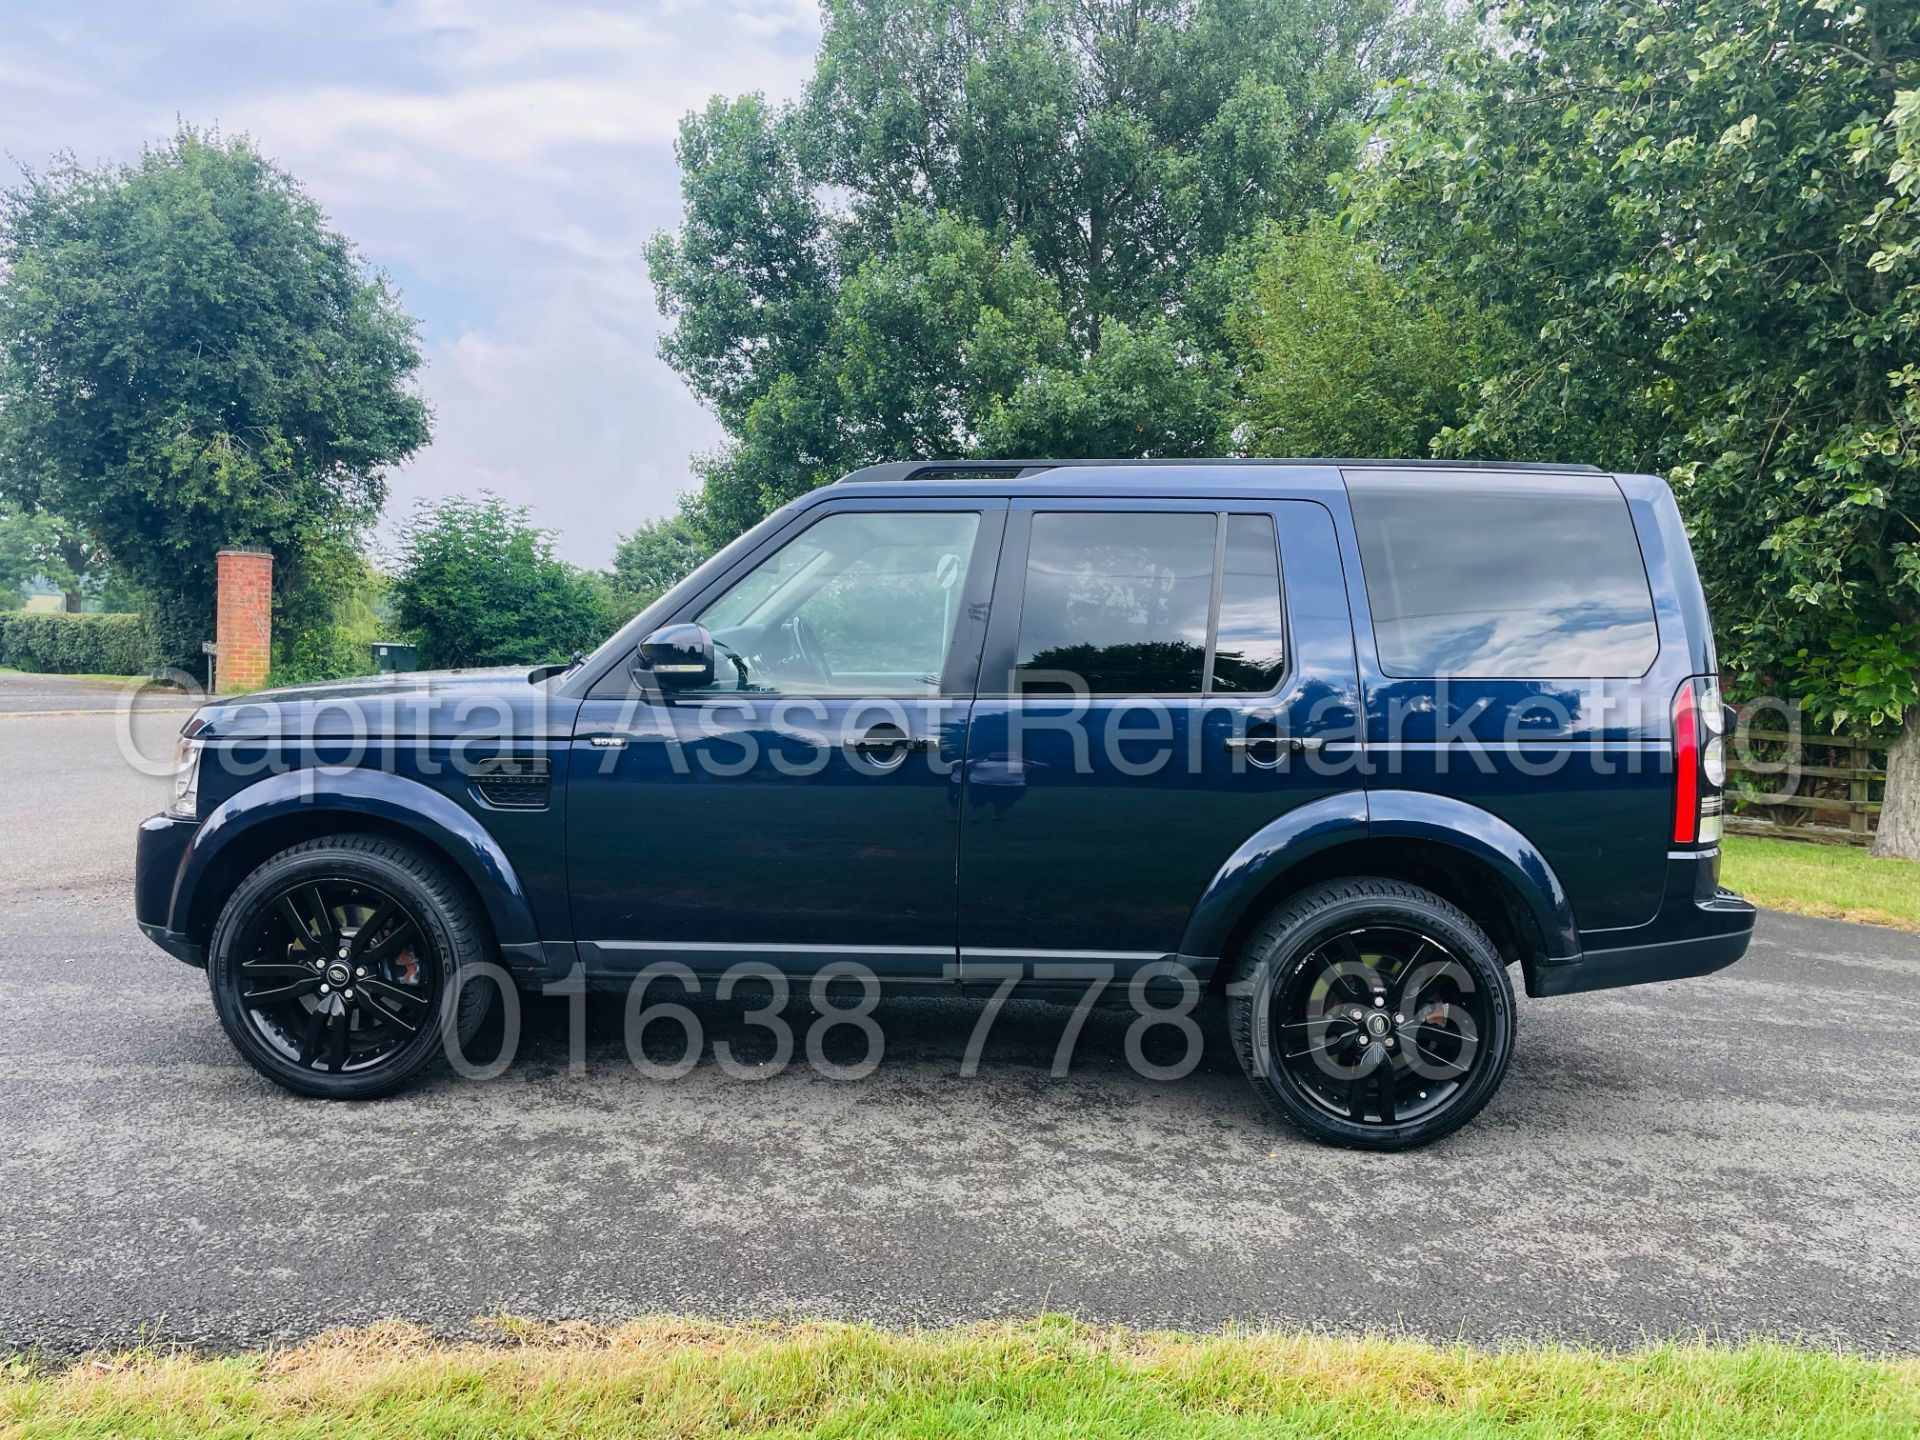 LAND ROVER DISCOVERY 4 *HSE* 7 SEATER SUV (2014 - NEW MODEL) '3.0 SDV6 - 255 BHP - 8 SPEED AUTO' - Image 8 of 61